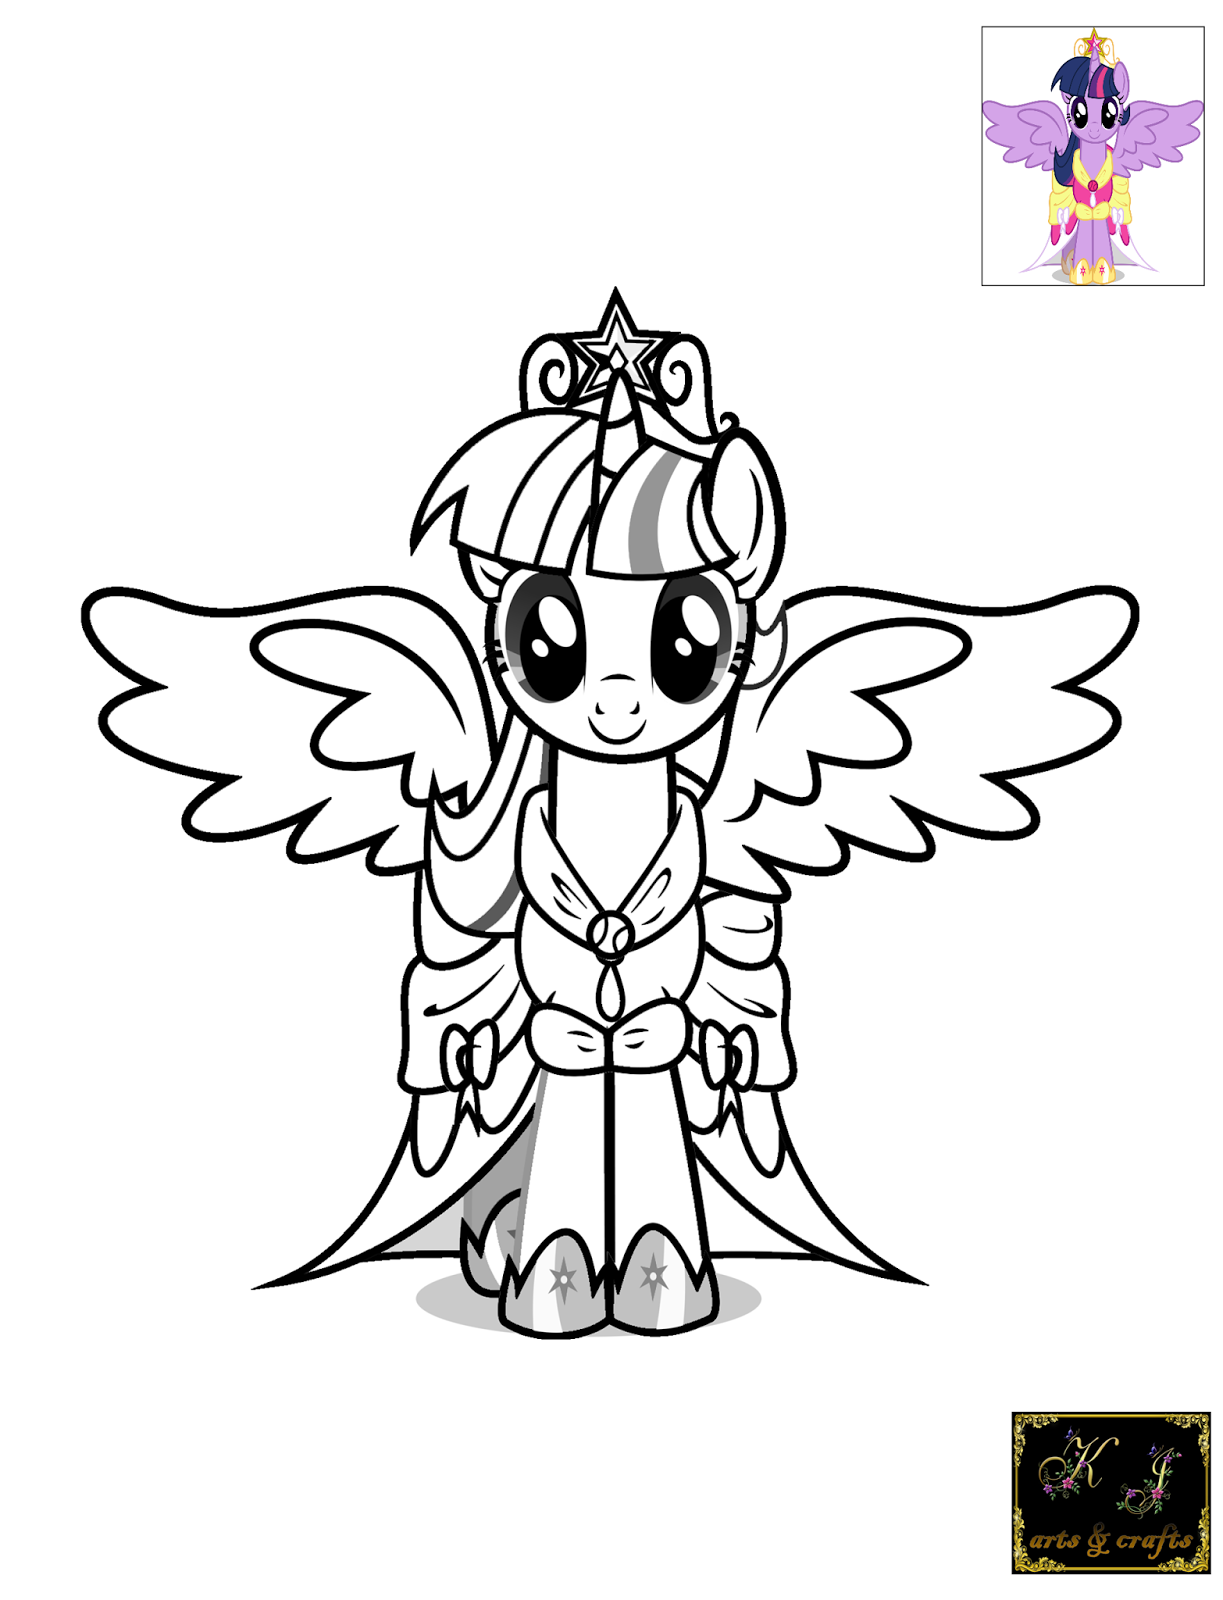 Twilight Sparkle Coloring Page - Free My Little Pony ... |Twilight Sparkle Face Coloring Page